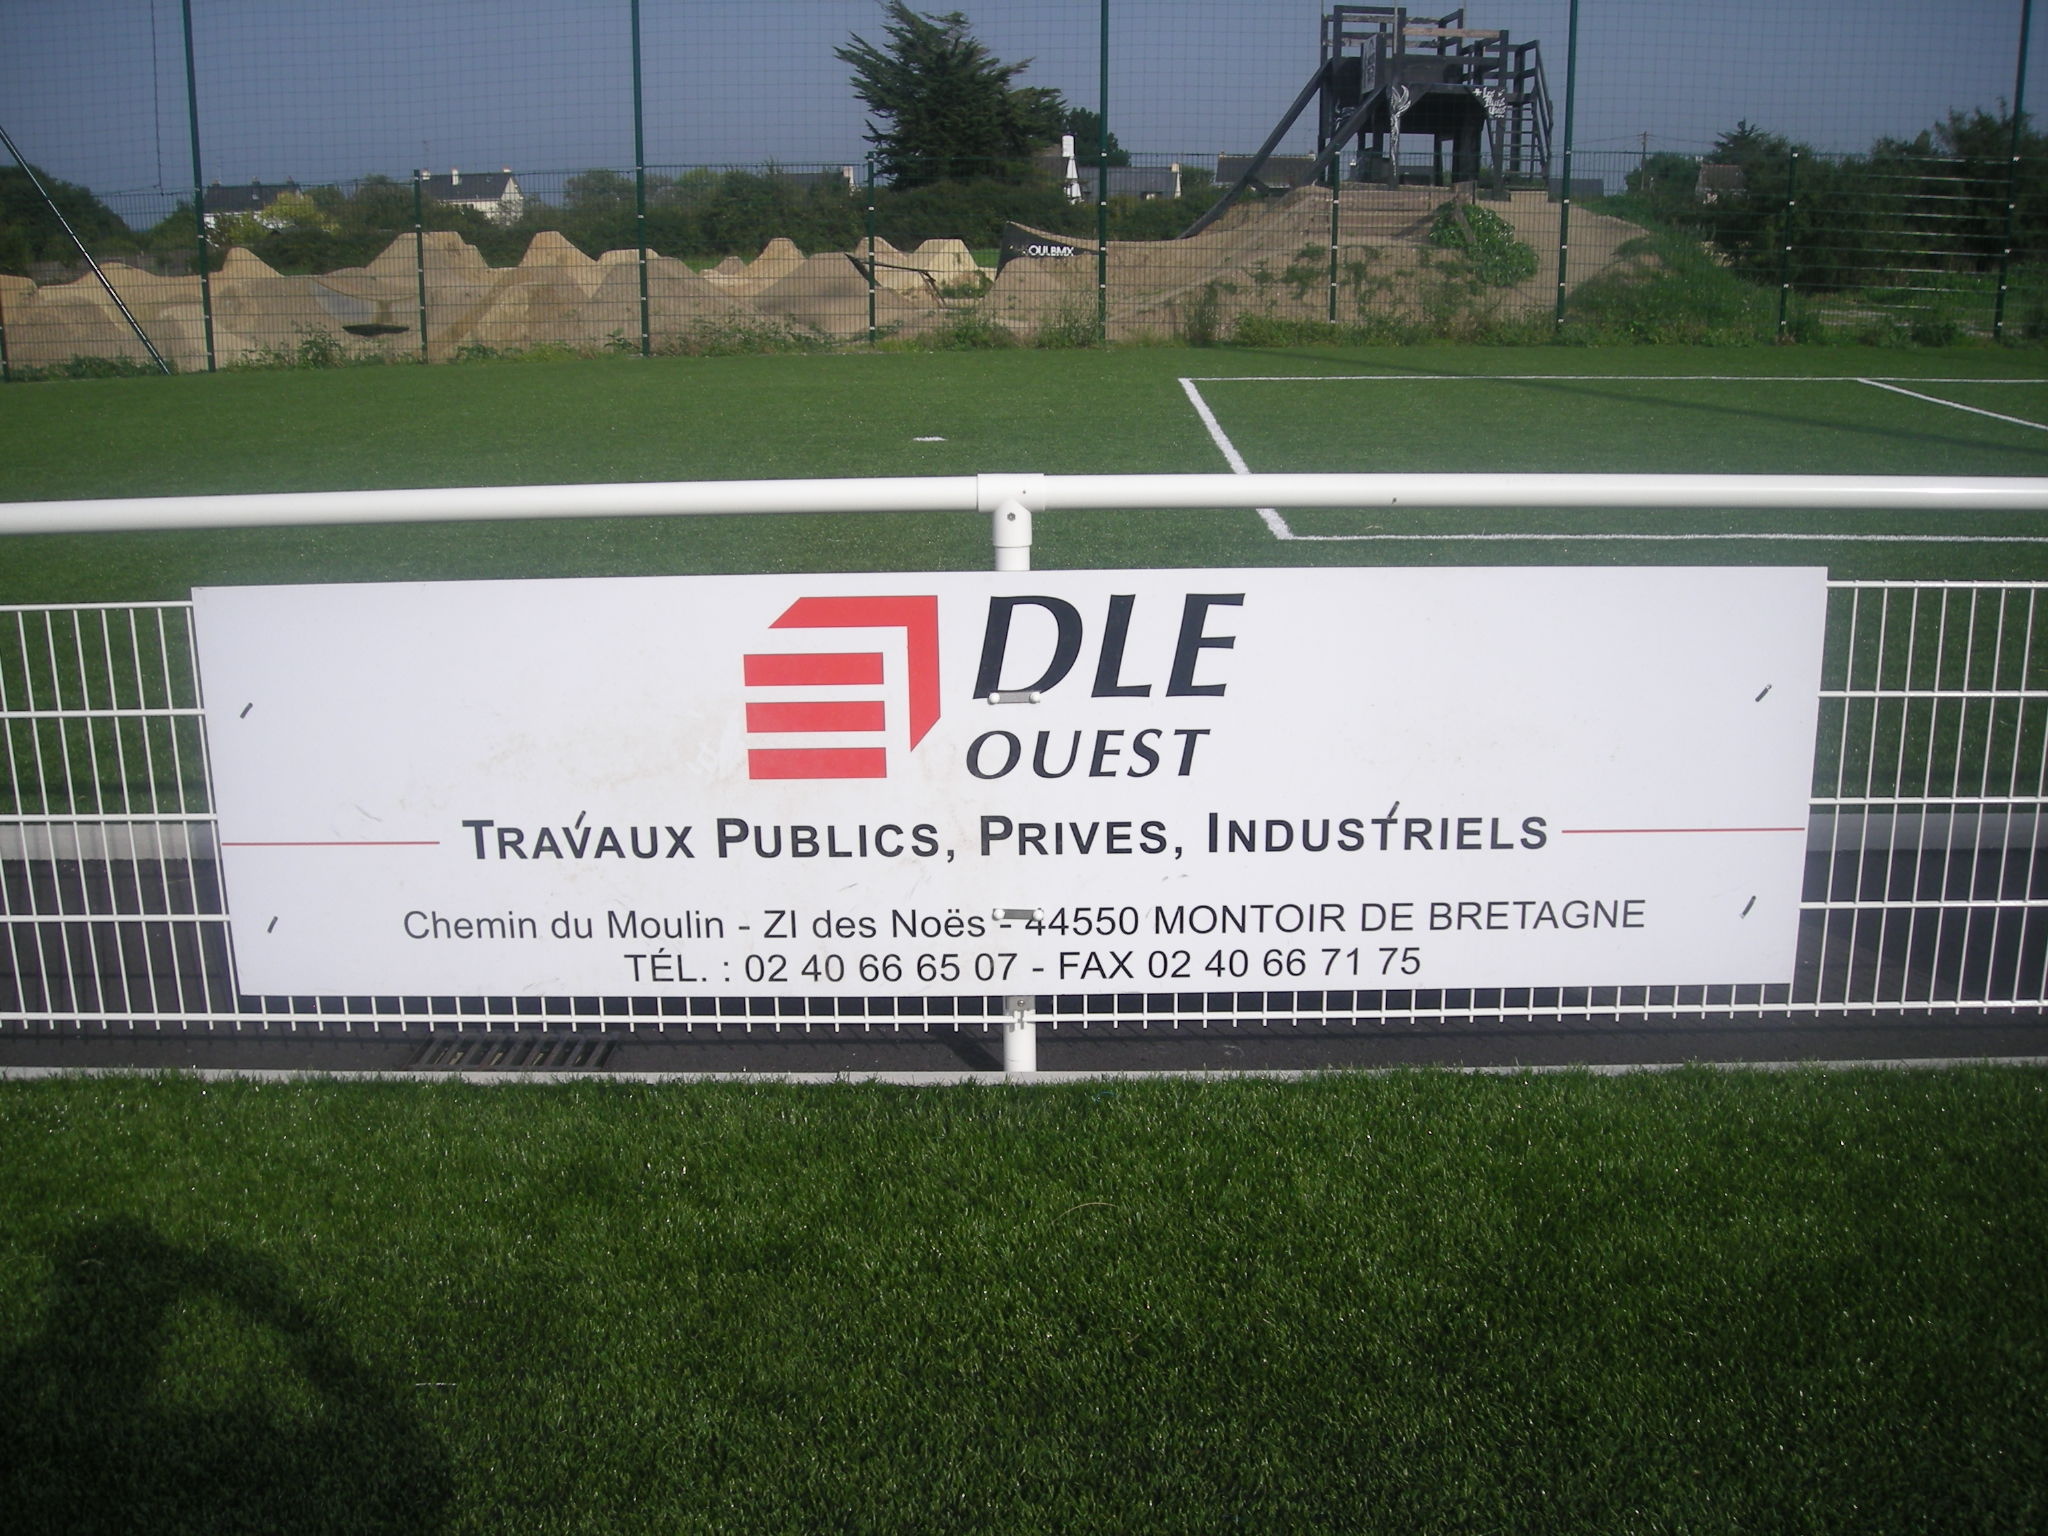 dle ouest